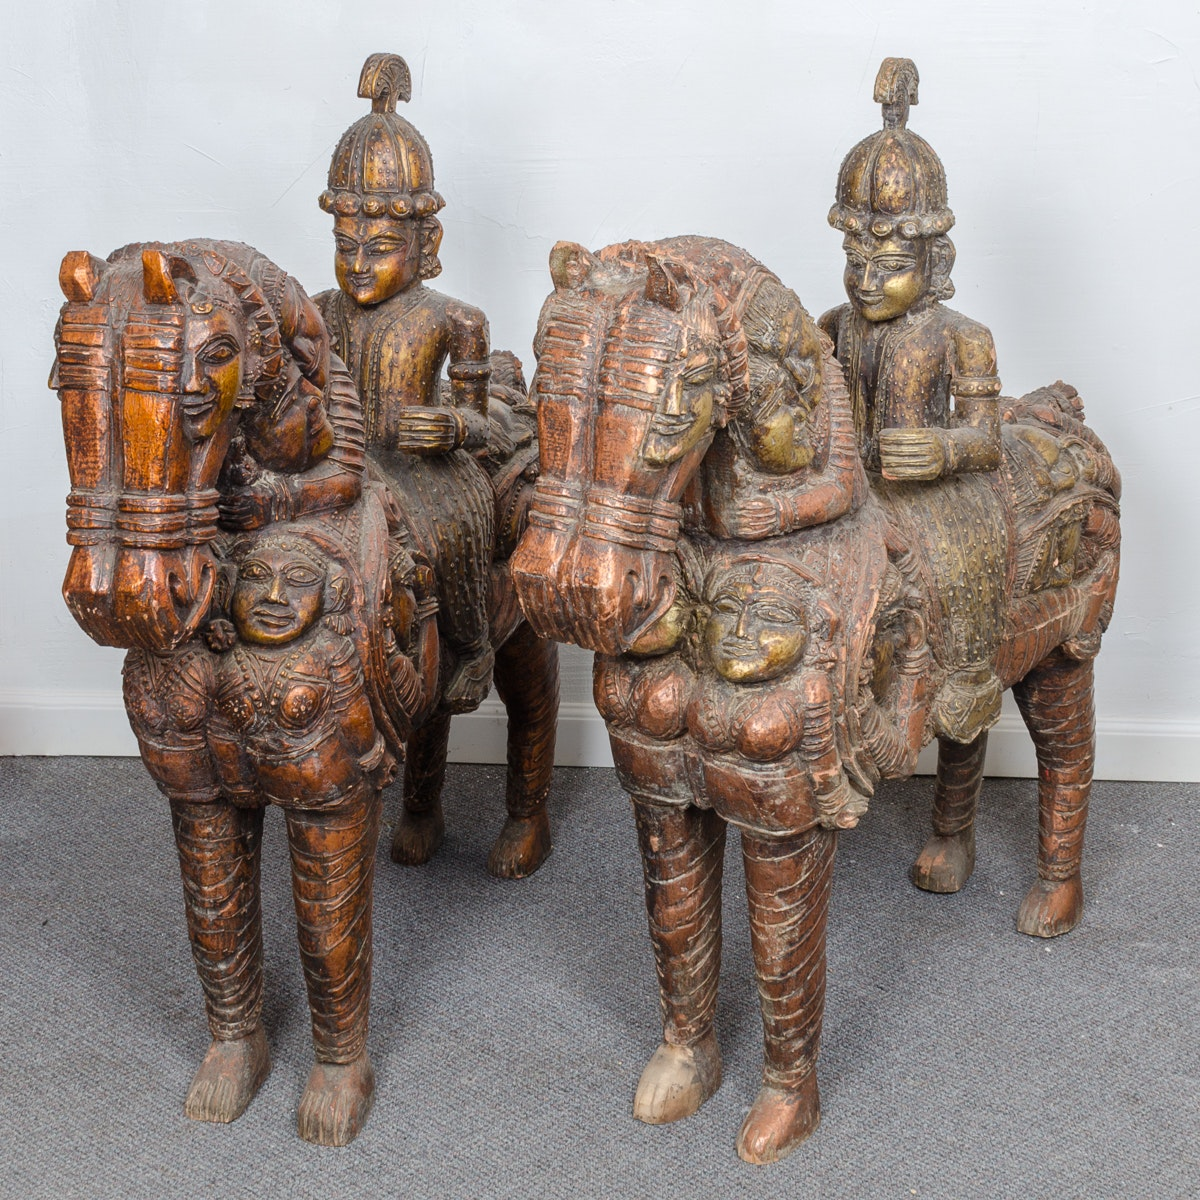 South Indian Carved Wooden Statues of Warriors on Horseback